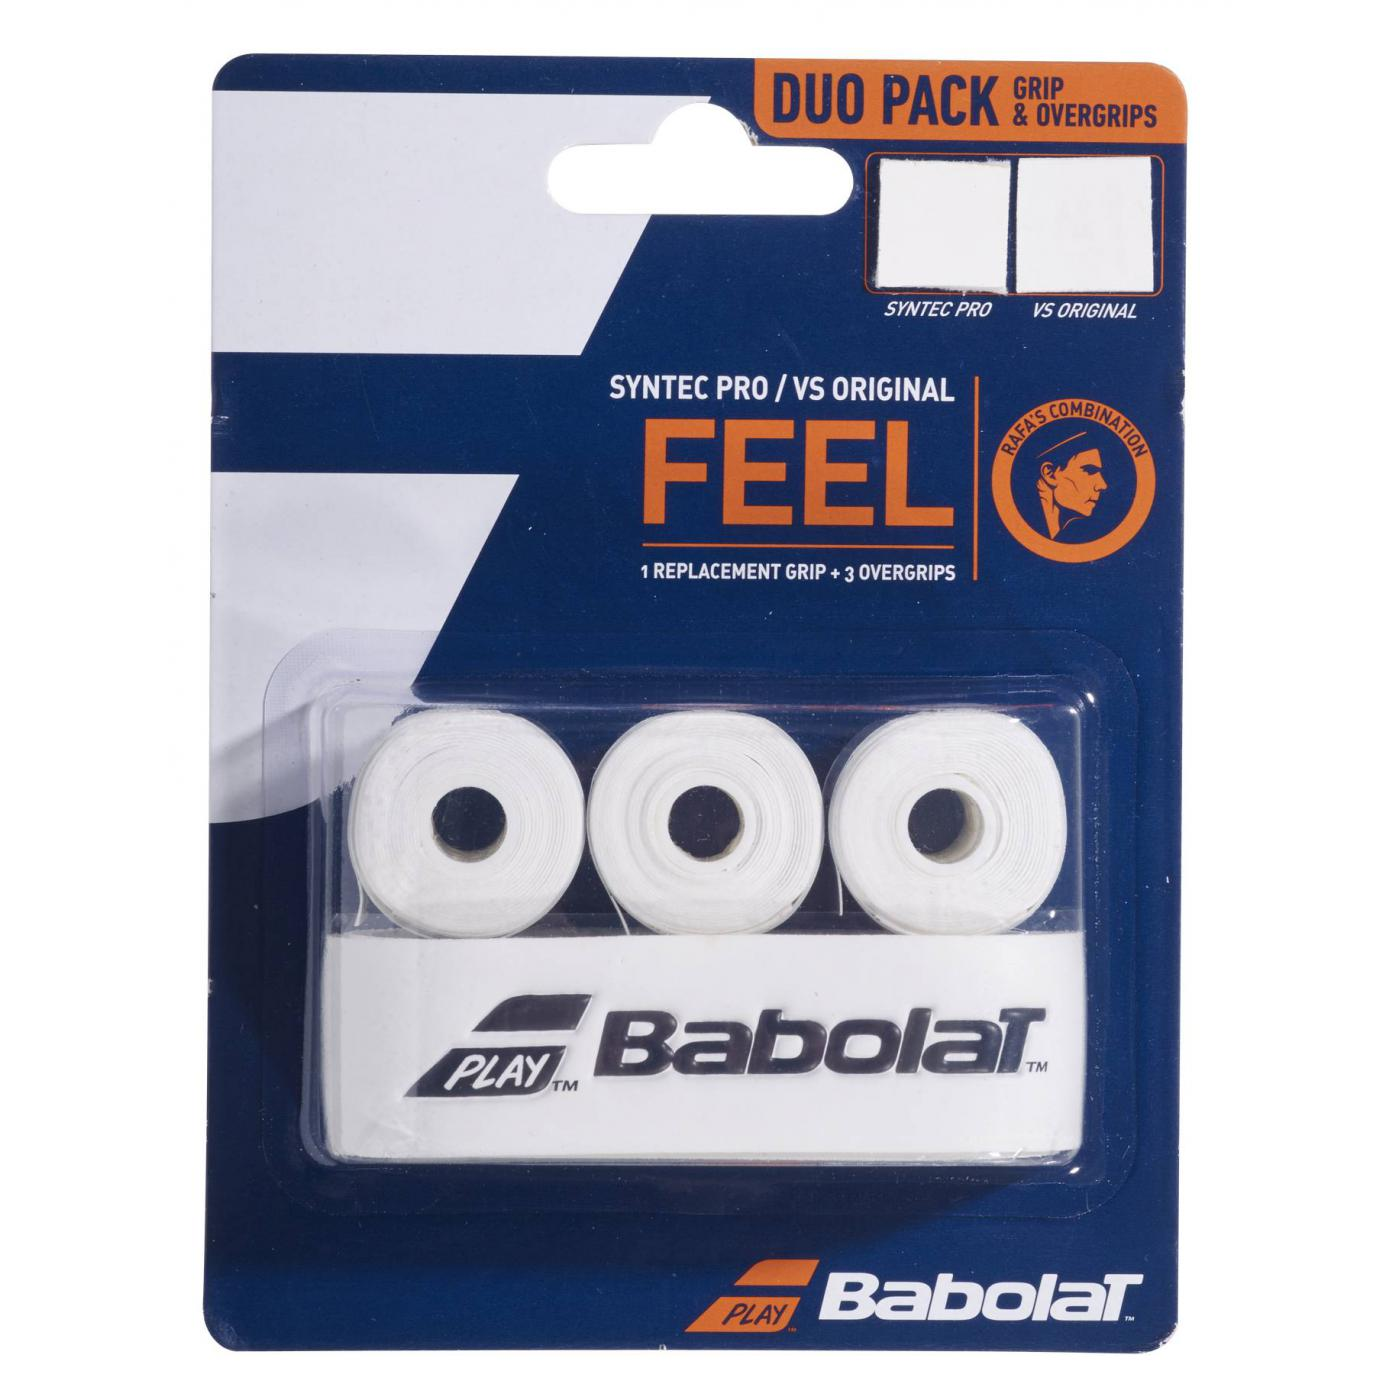 Babolat FEEL Syntec Pro / VS Original - Duo pack